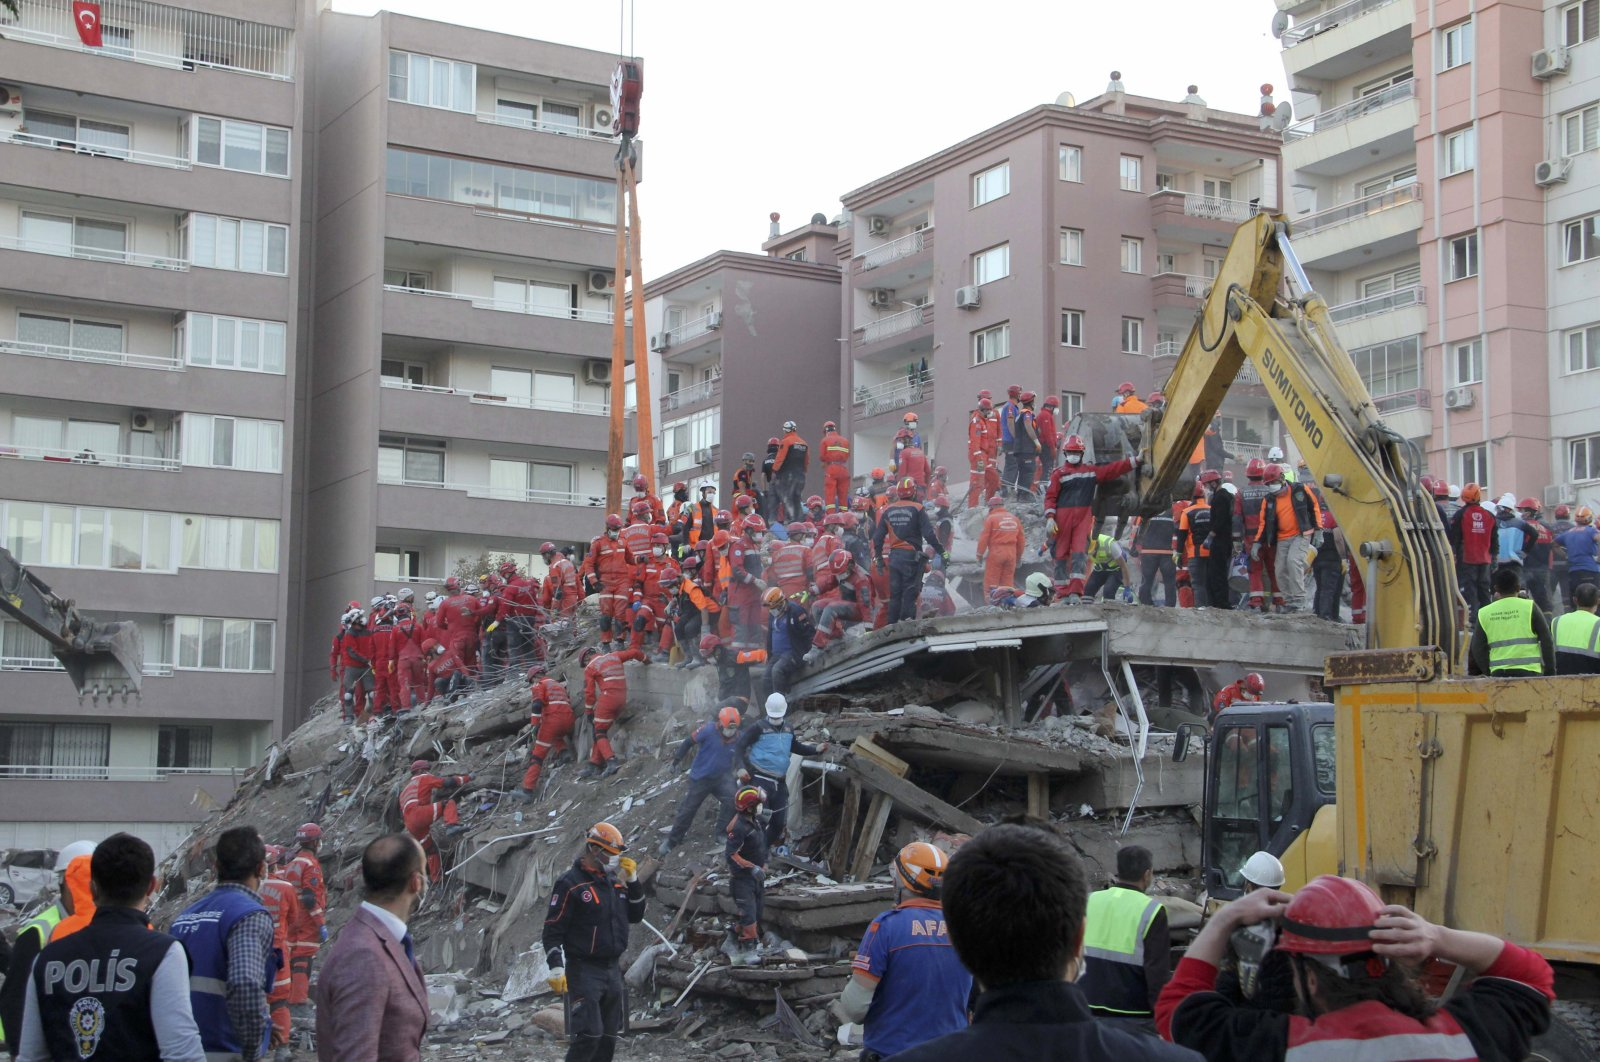 Rescue workers, who were trying to reach survivors in the rubble of a collapsed building, leave the area as the adjacent building at the right started moving, in Izmir, Turkey, Nov. 1, 2020. (AP Photo)